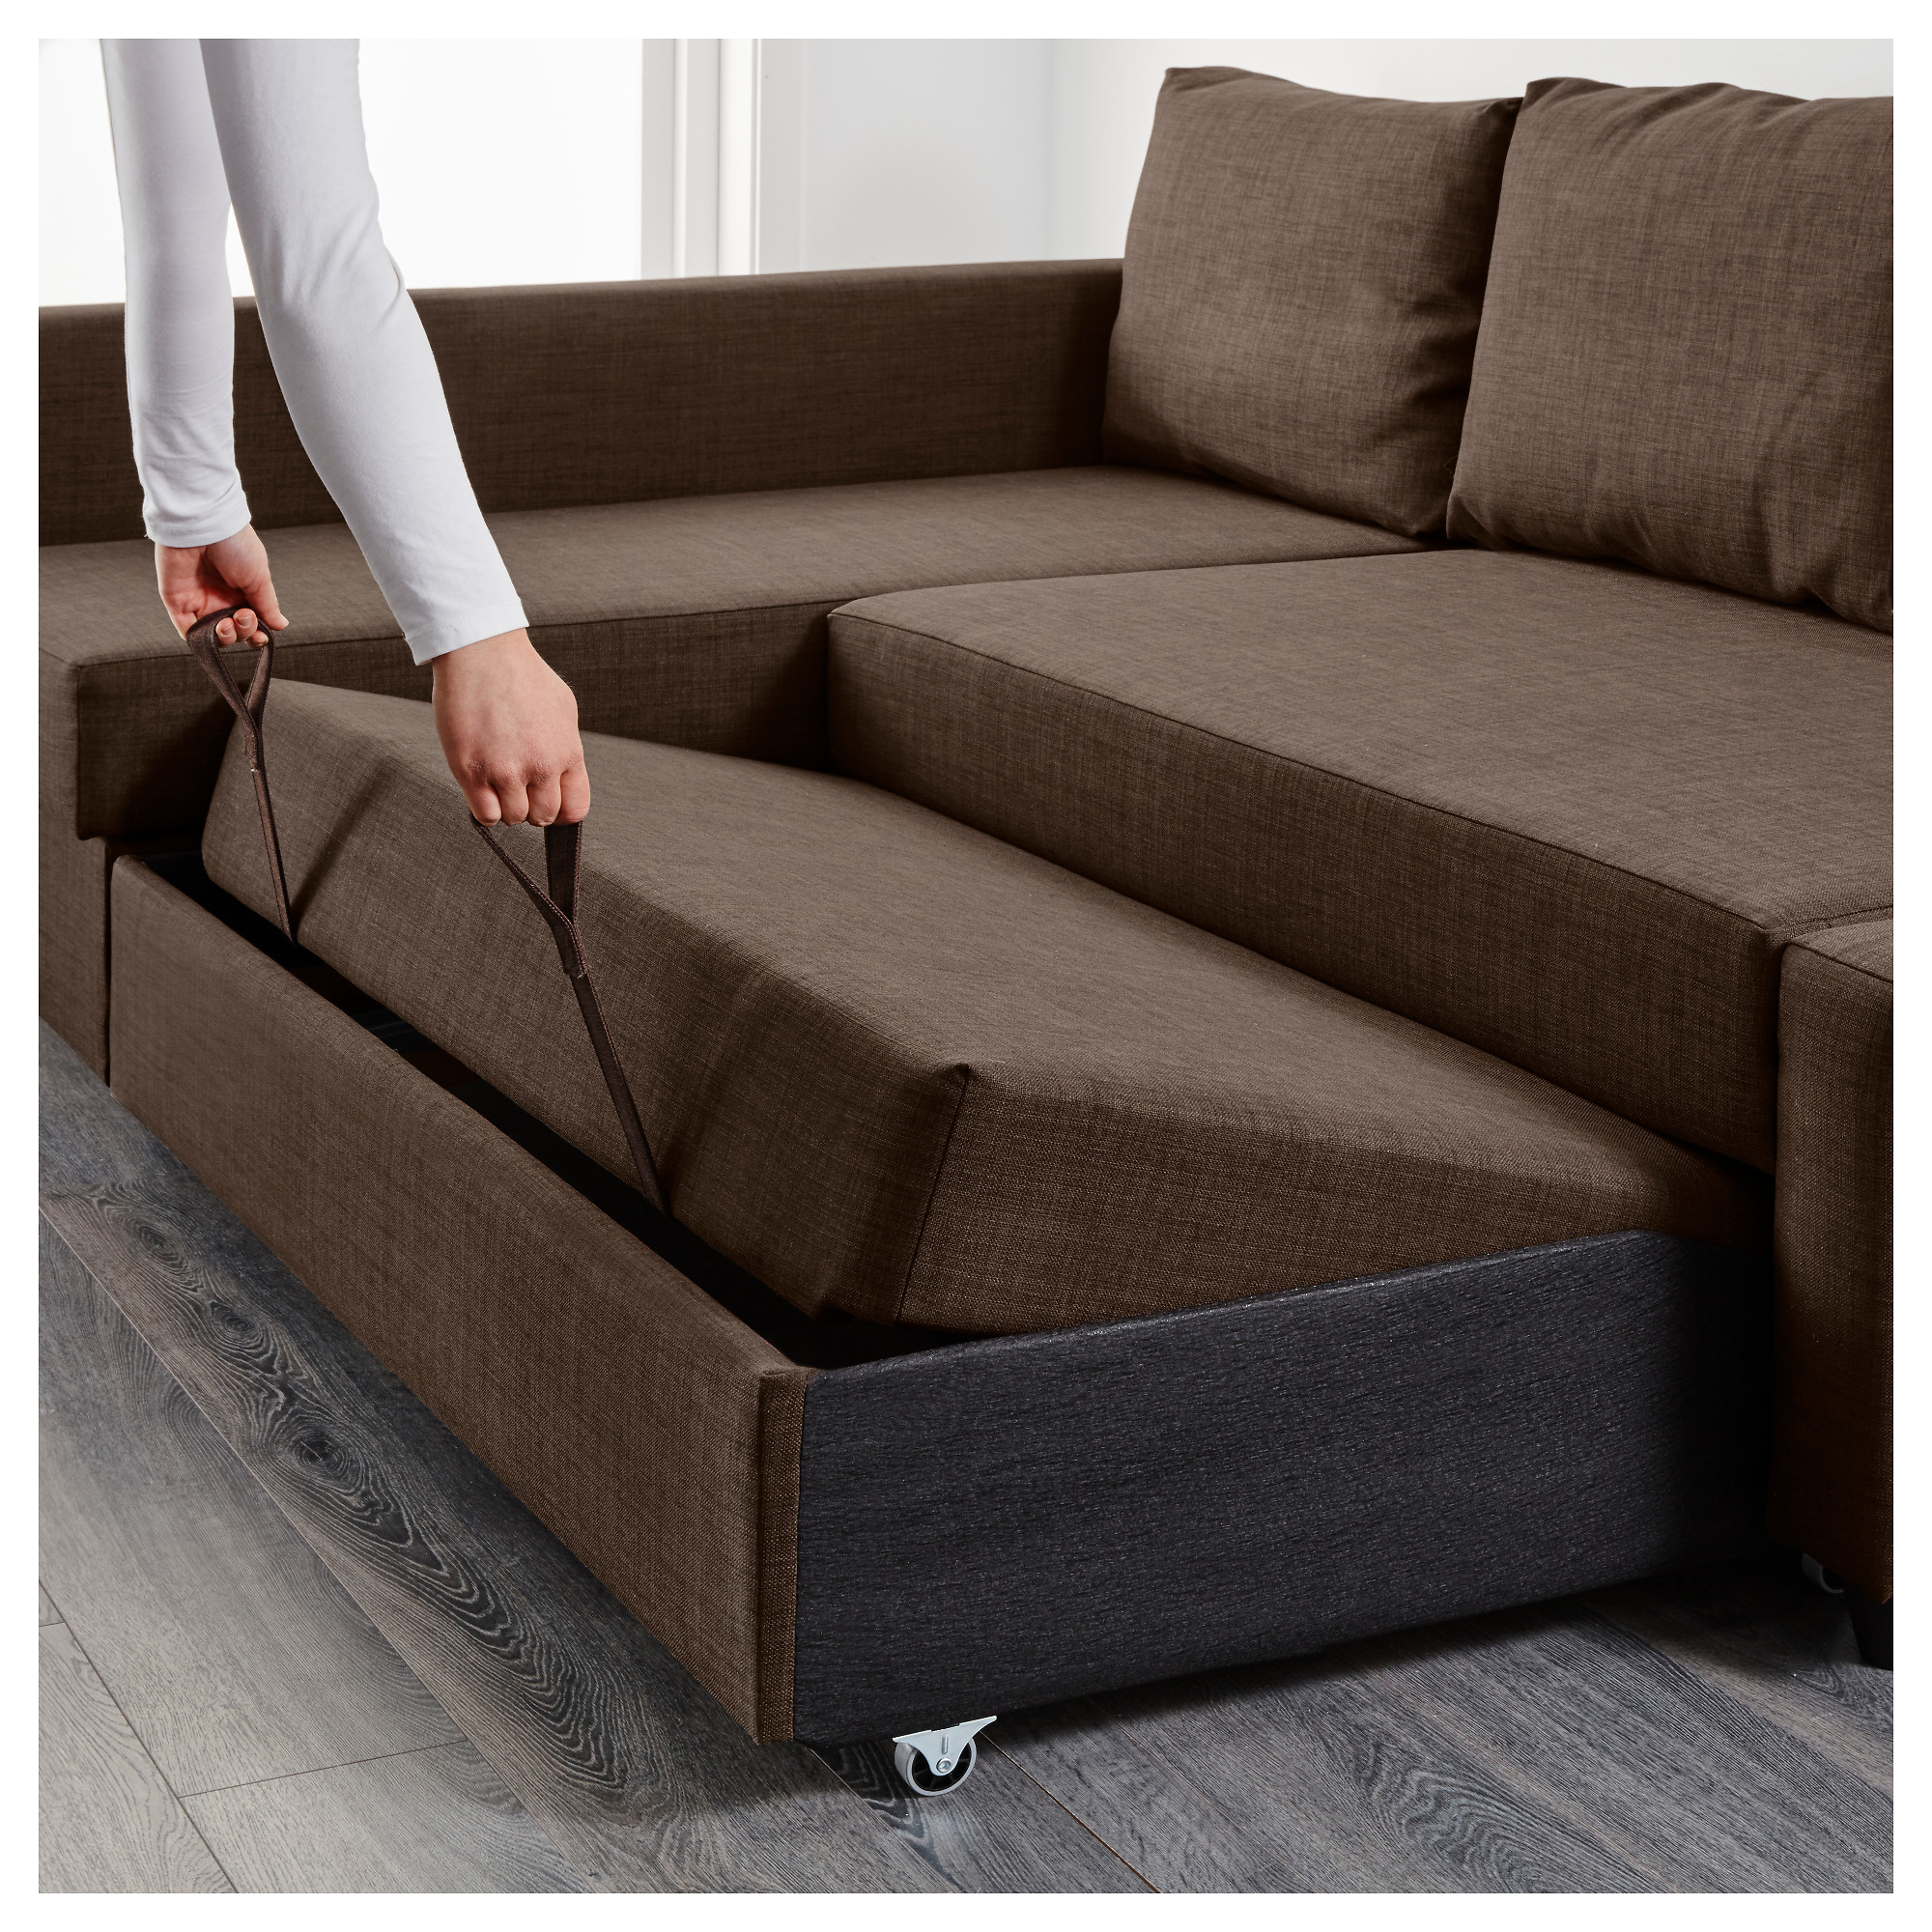 Couch Bed With Storage Part - 24: FRIHETEN Corner Sofa-bed With Storage - Skiftebo Dark Gray - IKEA